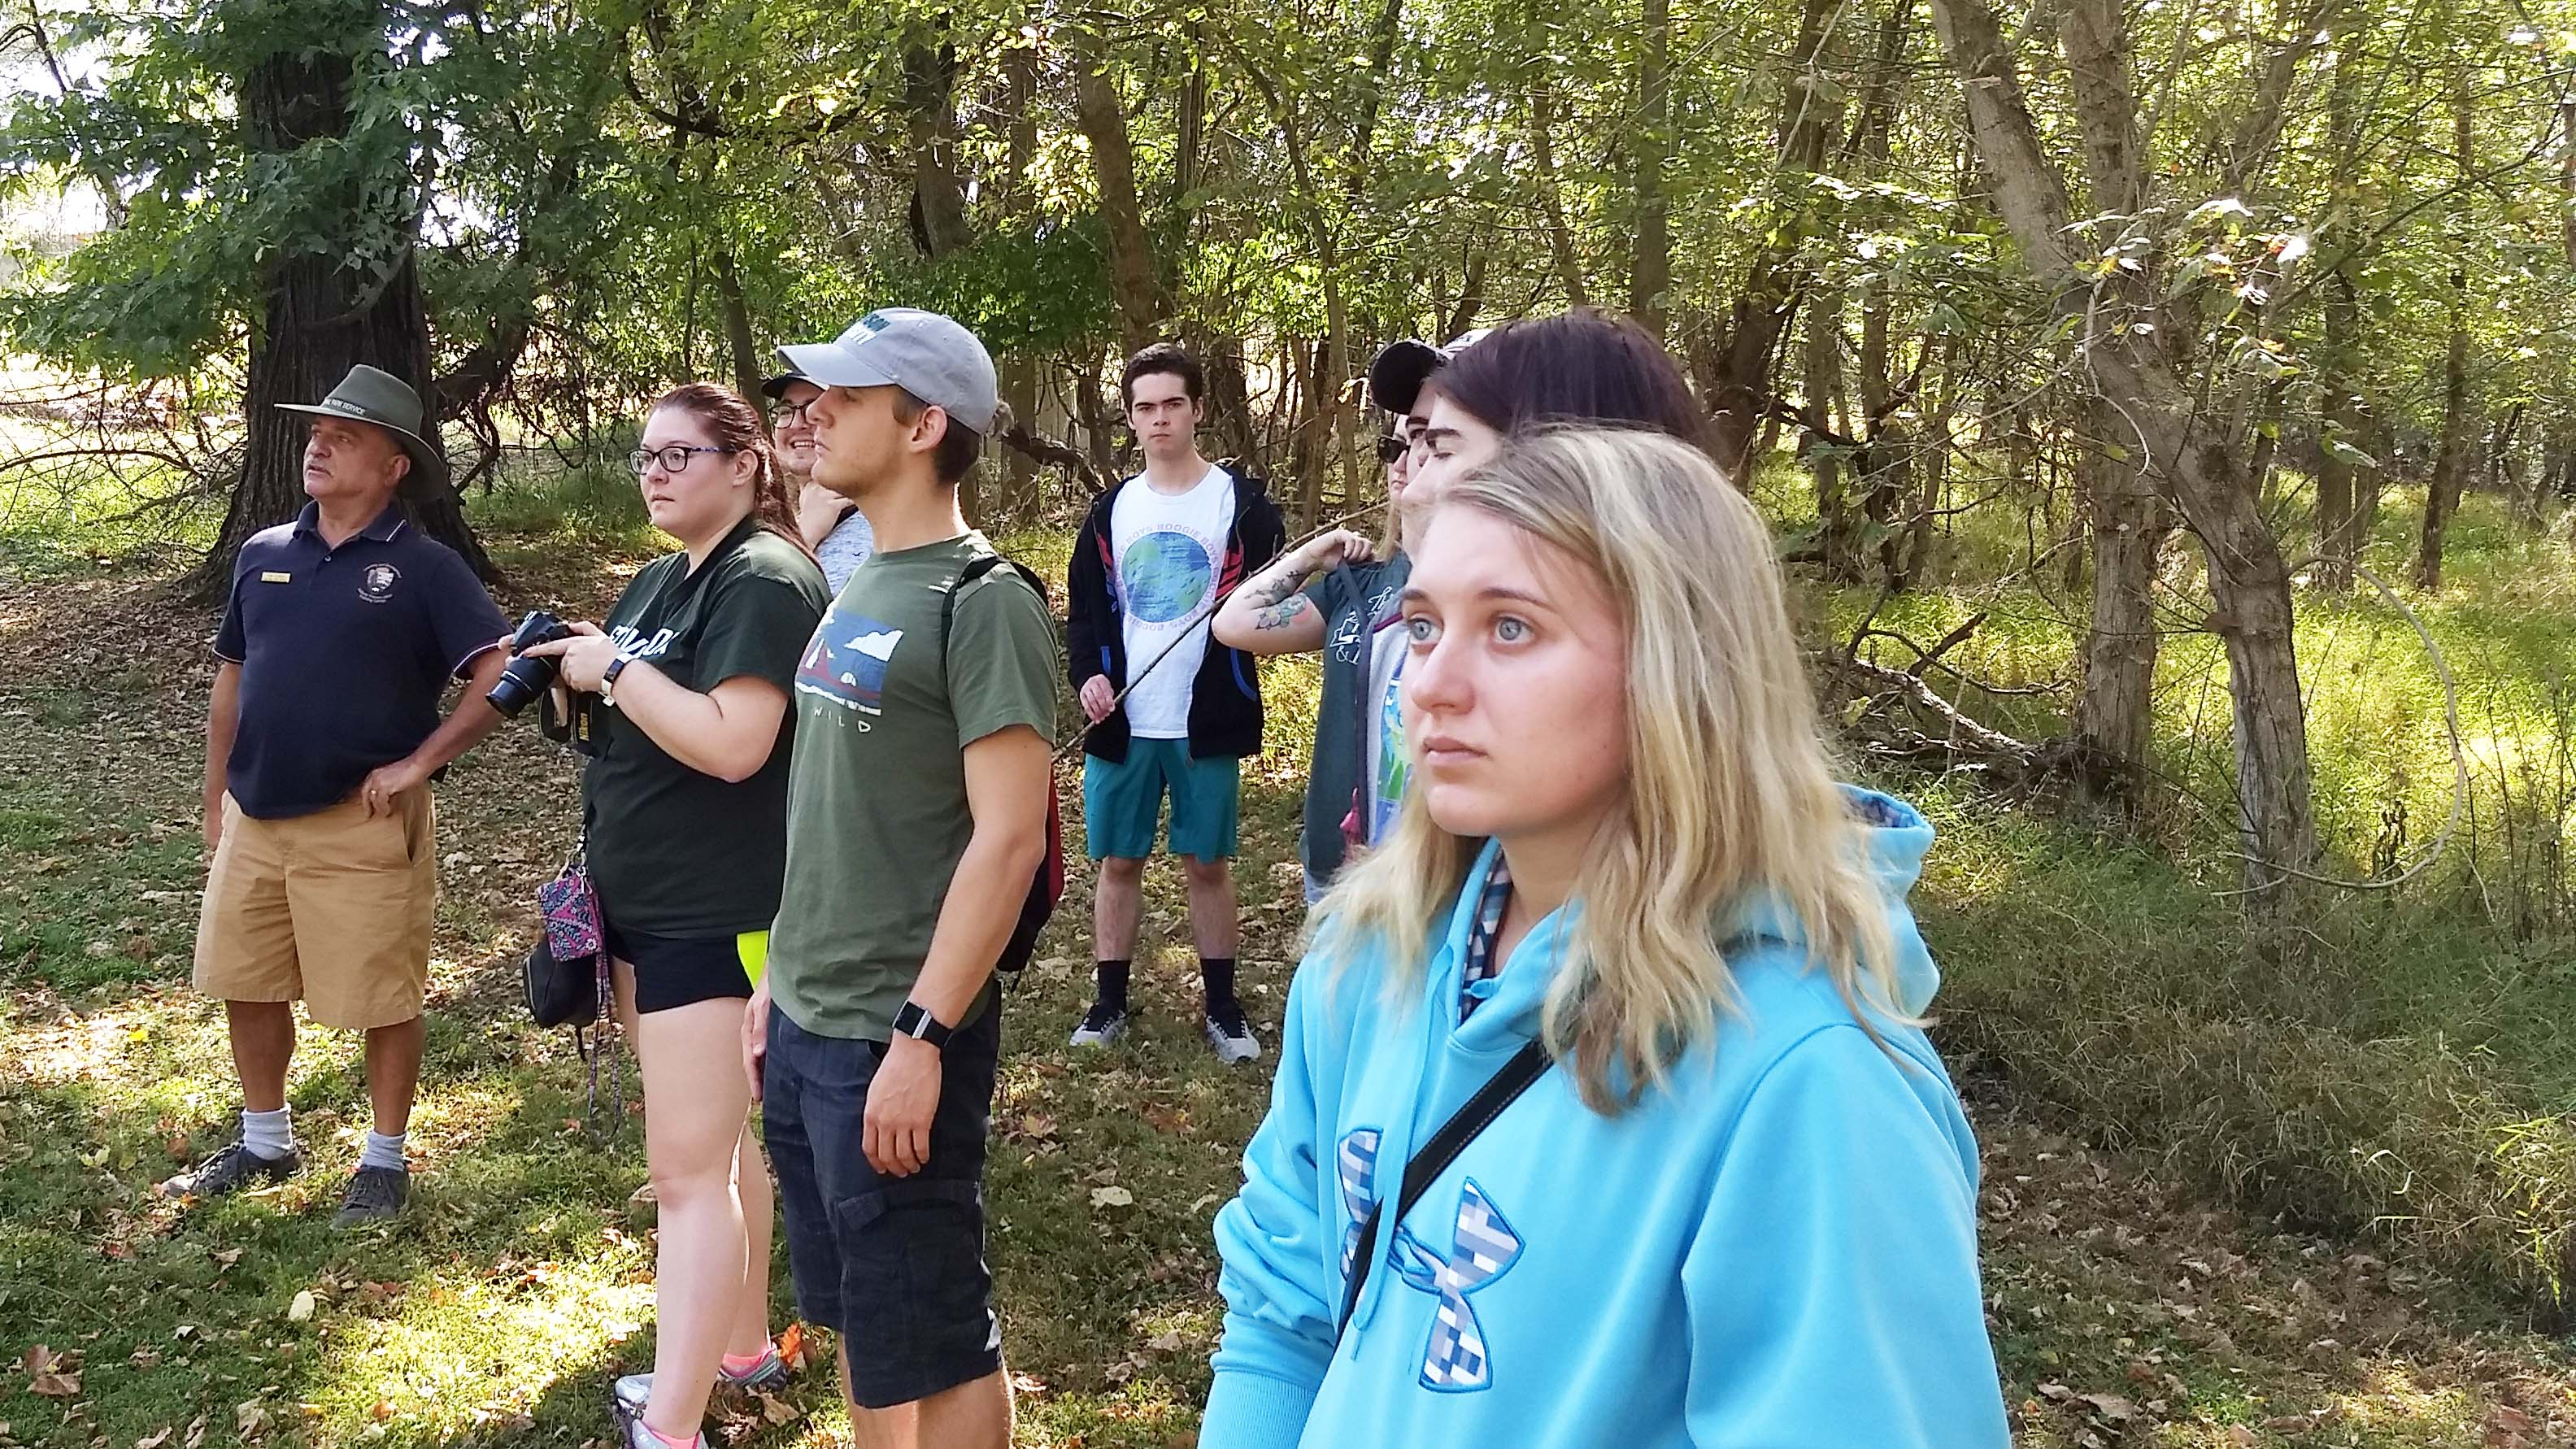 Stevenson History majors receive talk from an NPS historic preservation specialist at Monocacy Battlefield about his job.